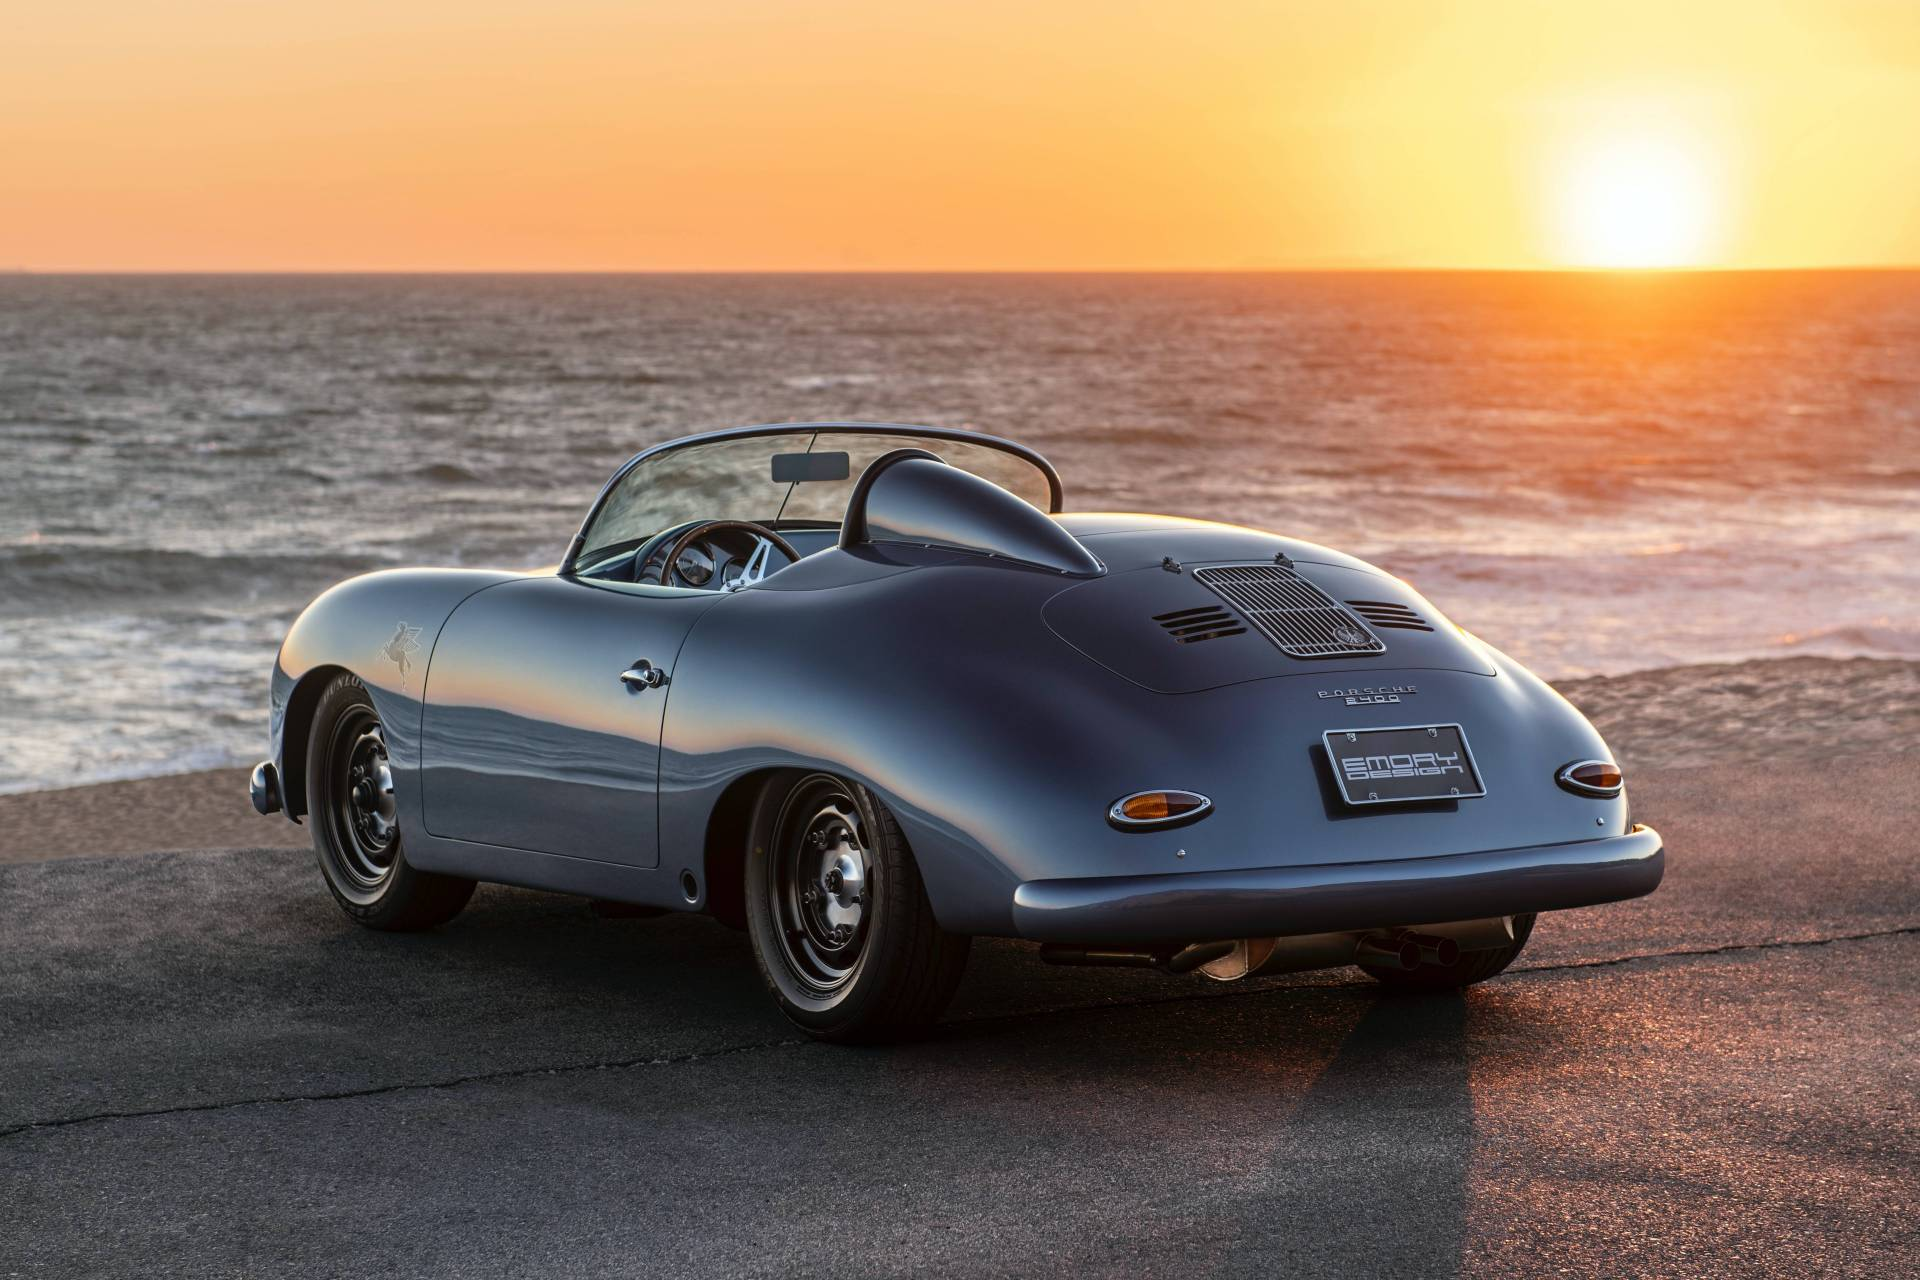 Porsche-356-Speedster-1959-Aquamarine-Transitional-By-Emory-Motorsport-5